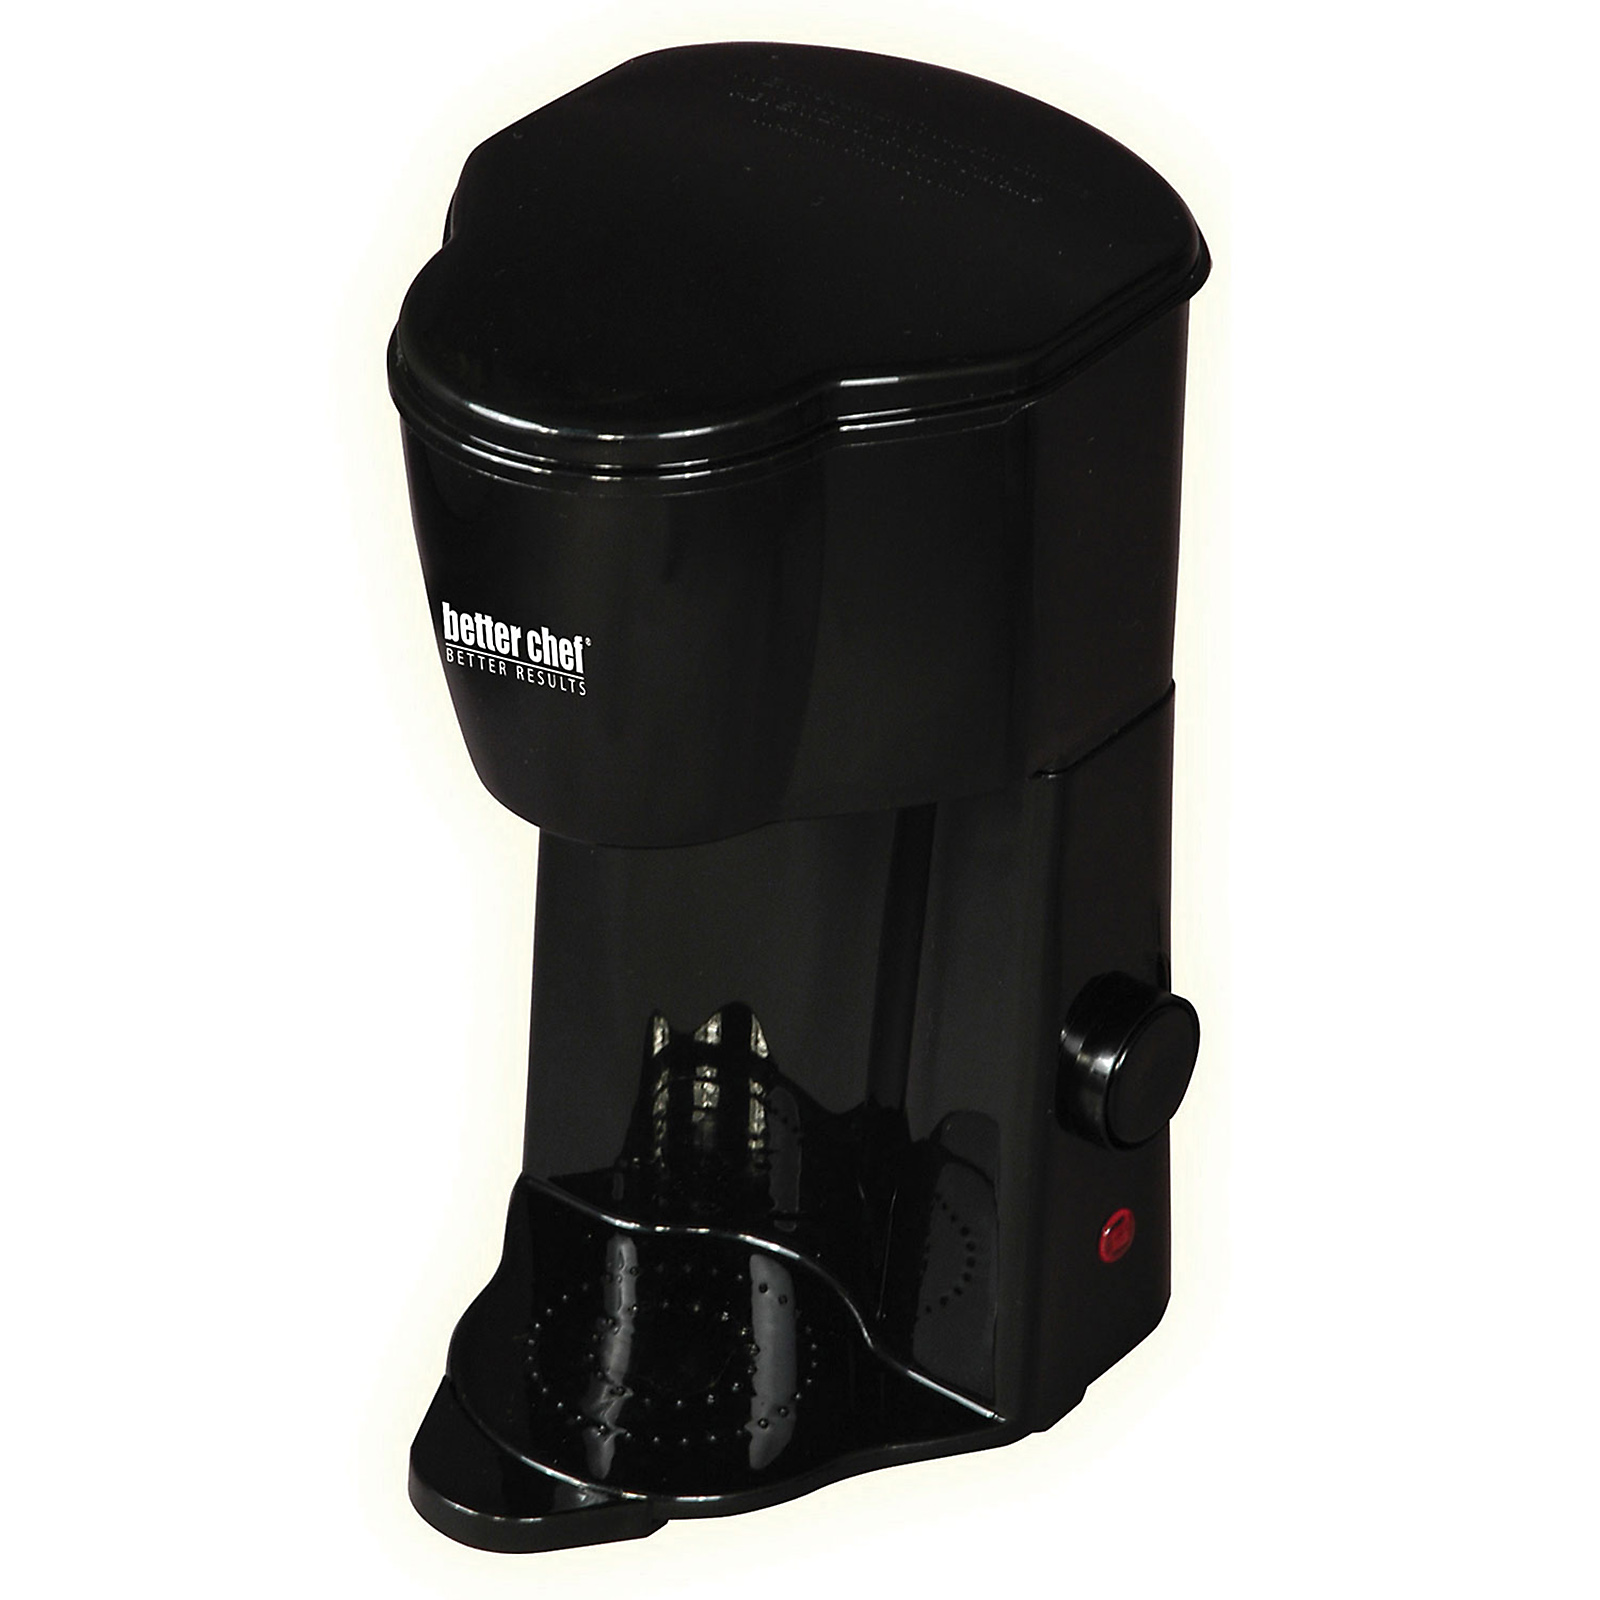 Better Chef 97080119M Personal Coffee Maker